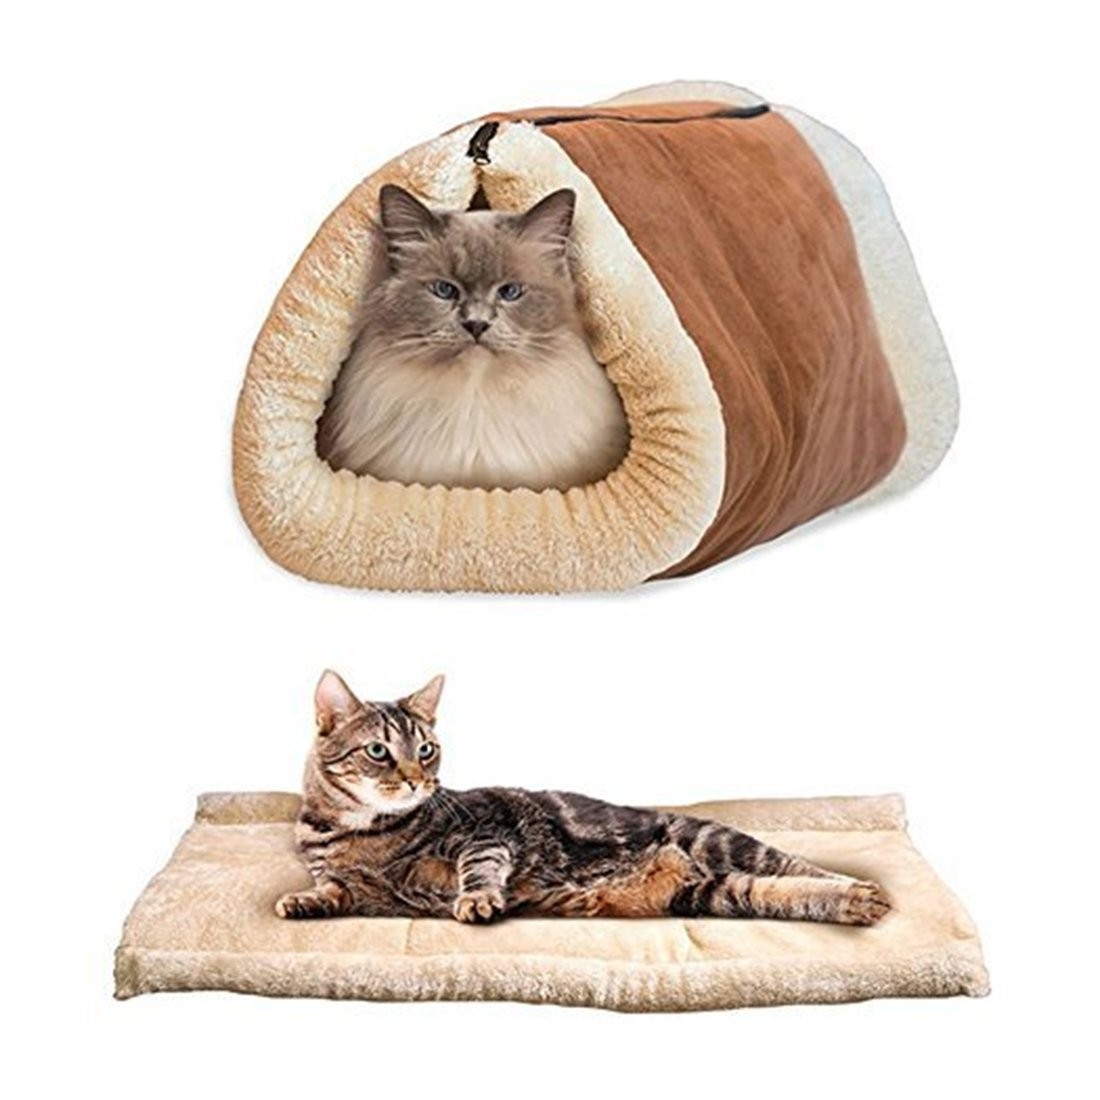 Cat Cave Beds Sleeping Mats House Covers 2 in 1 Pet Shack Brown none B01NBFPTQN